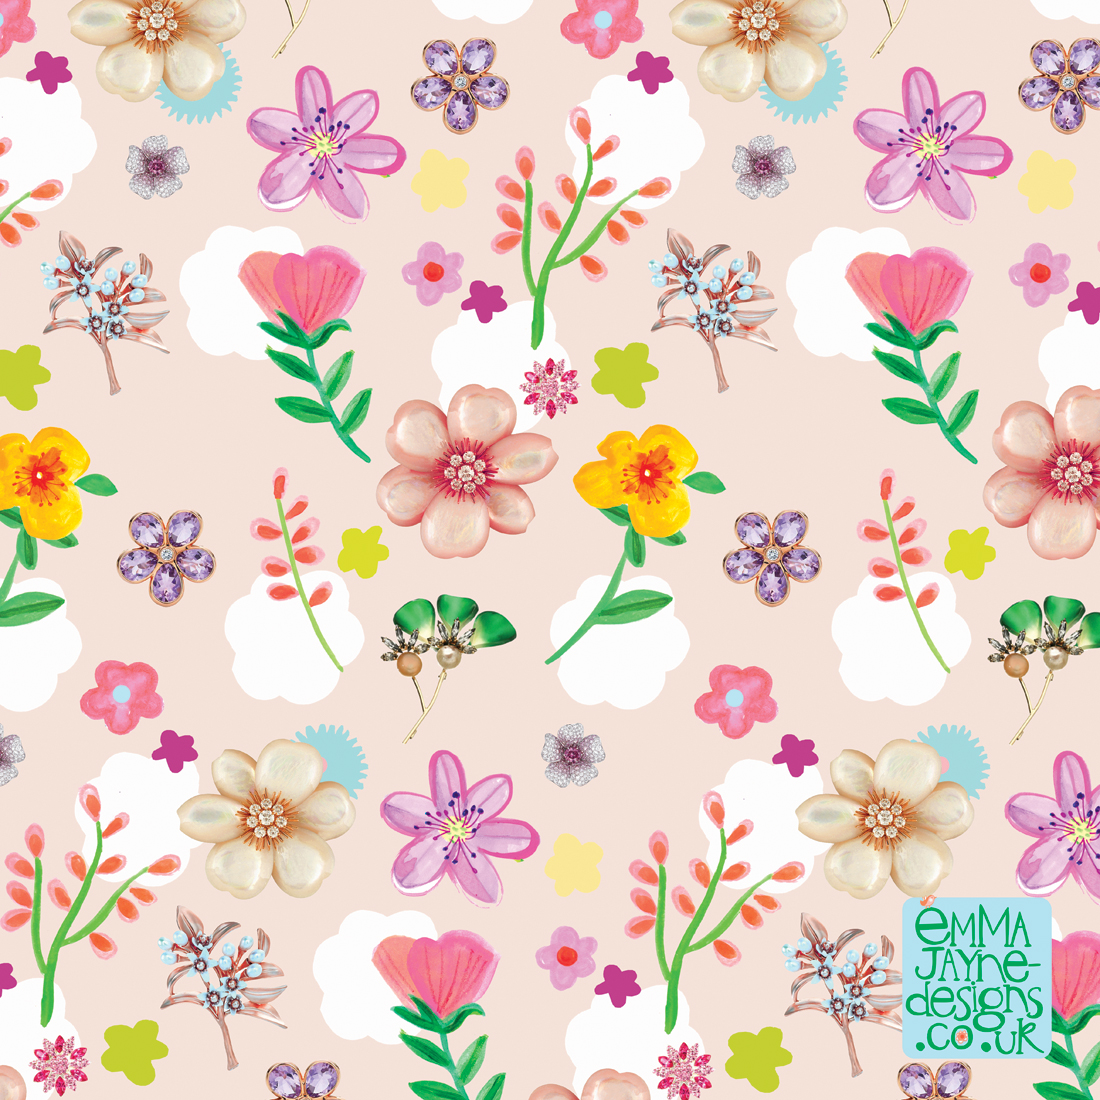 floral-pattern-designs1-emmajayne-designs